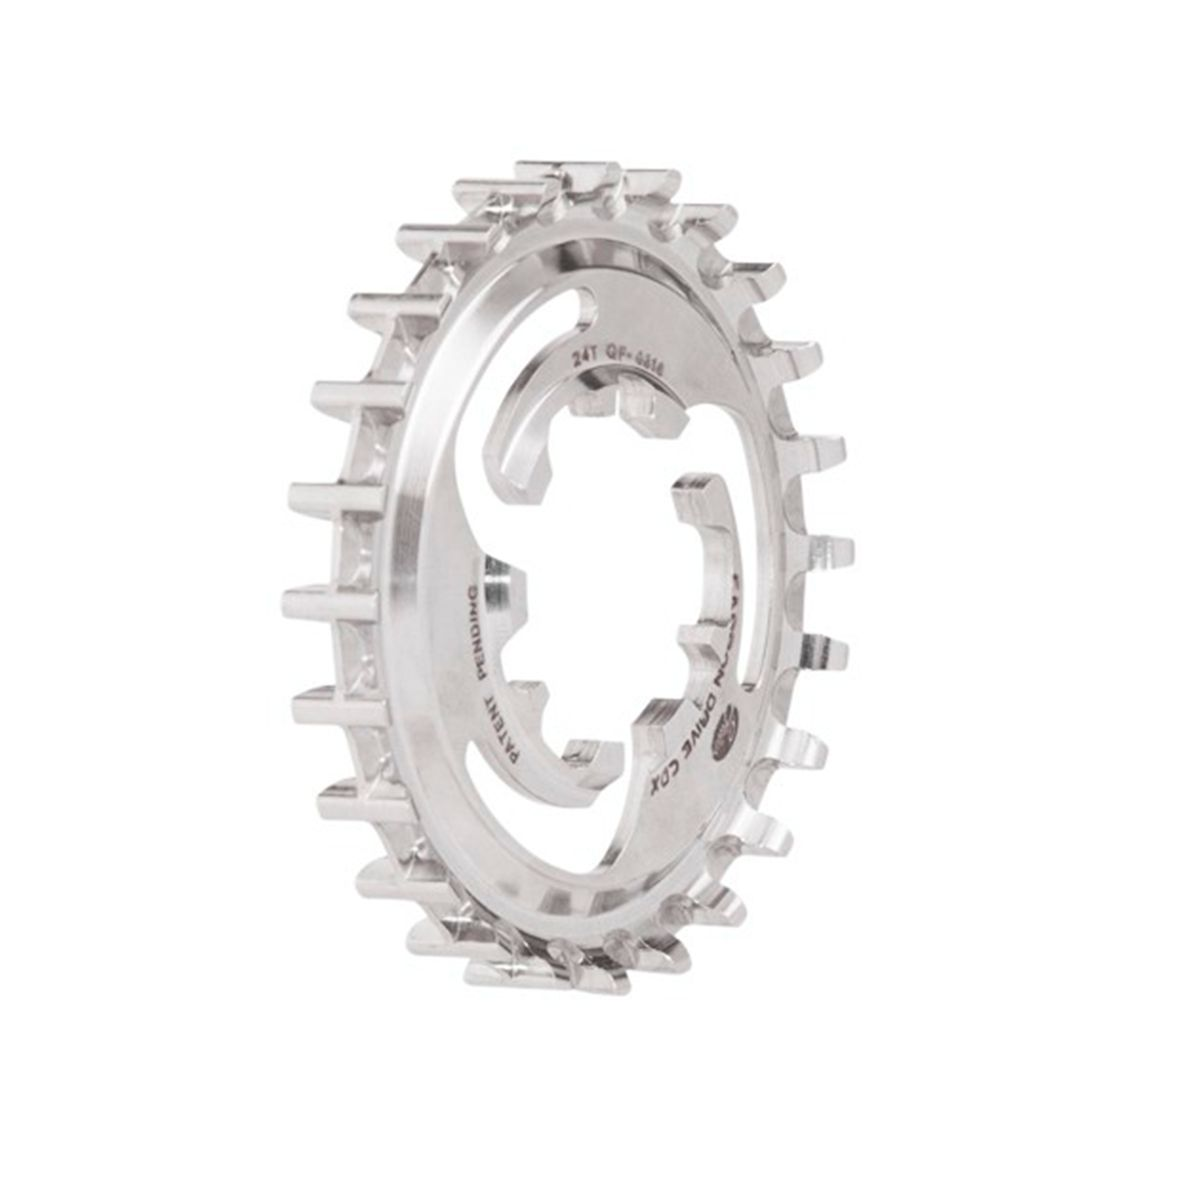 Gates Carbon Drive Rear Sprocket CDX CenterTrack NuVinci | chainrings_component